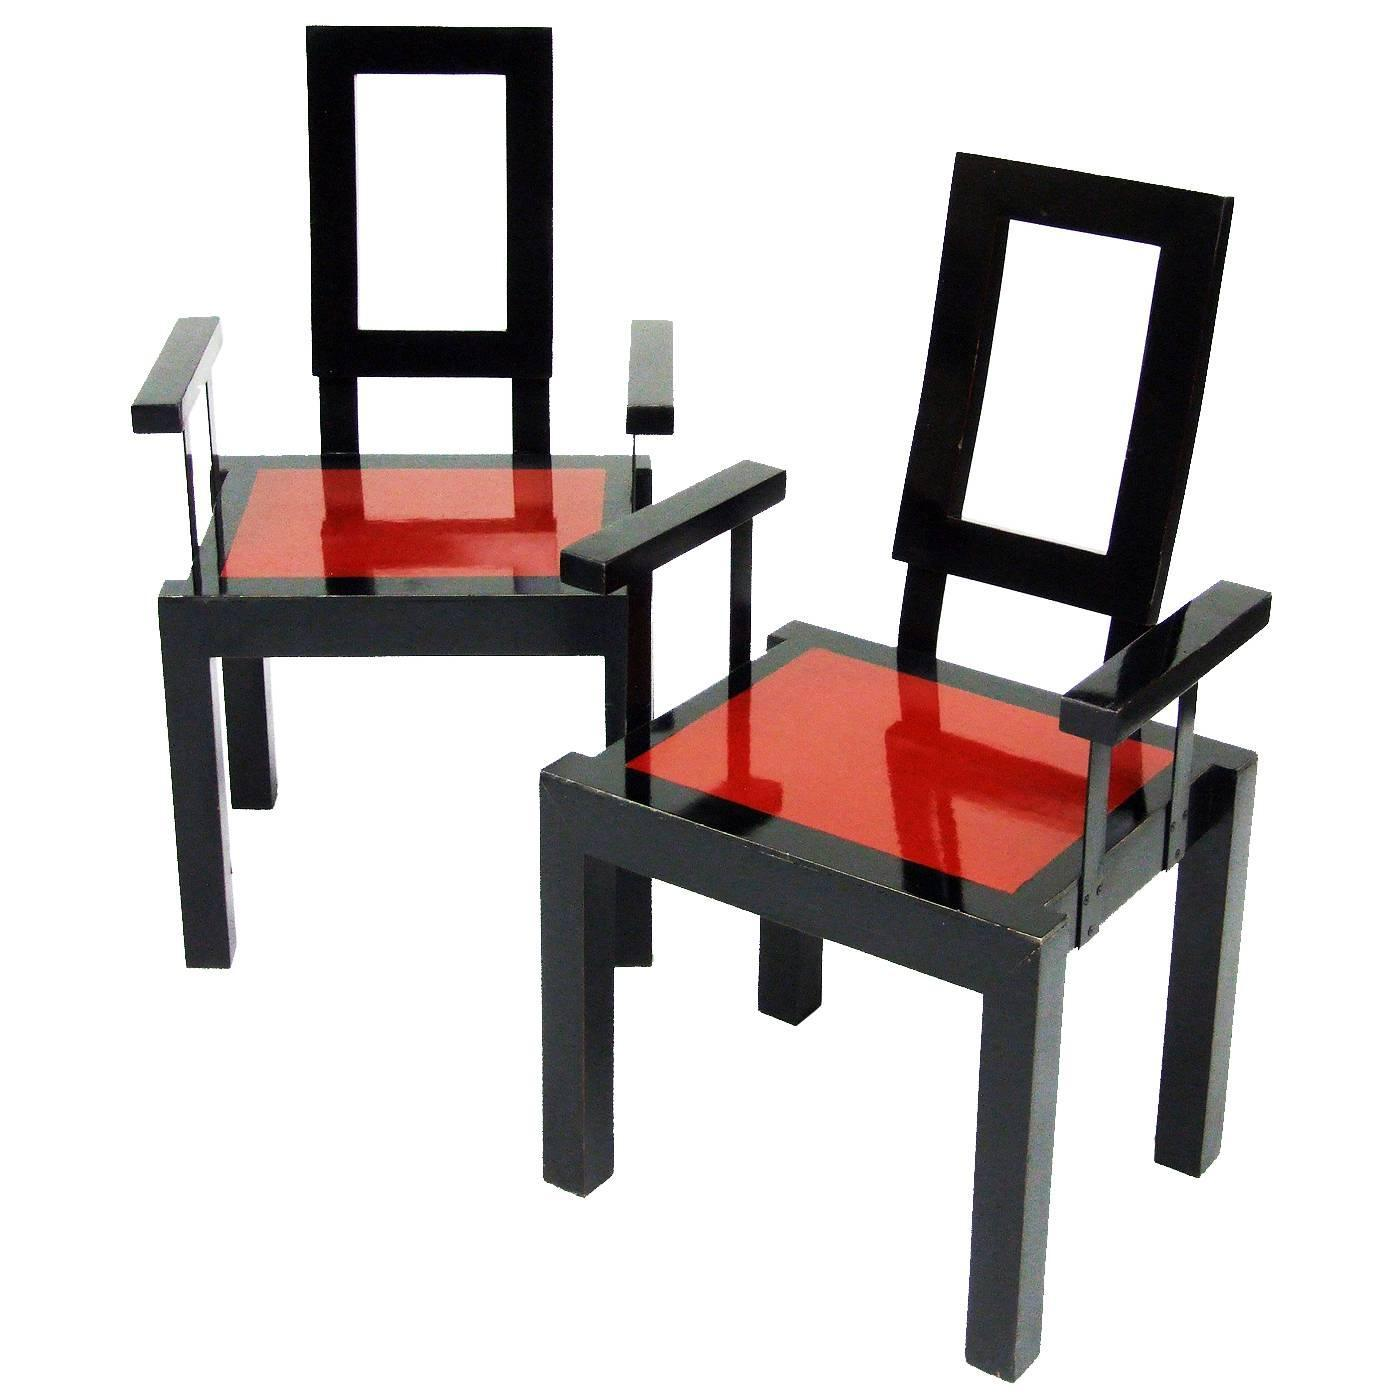 1980s italian postmodernist memphis style chairs for sale for 1980s chair